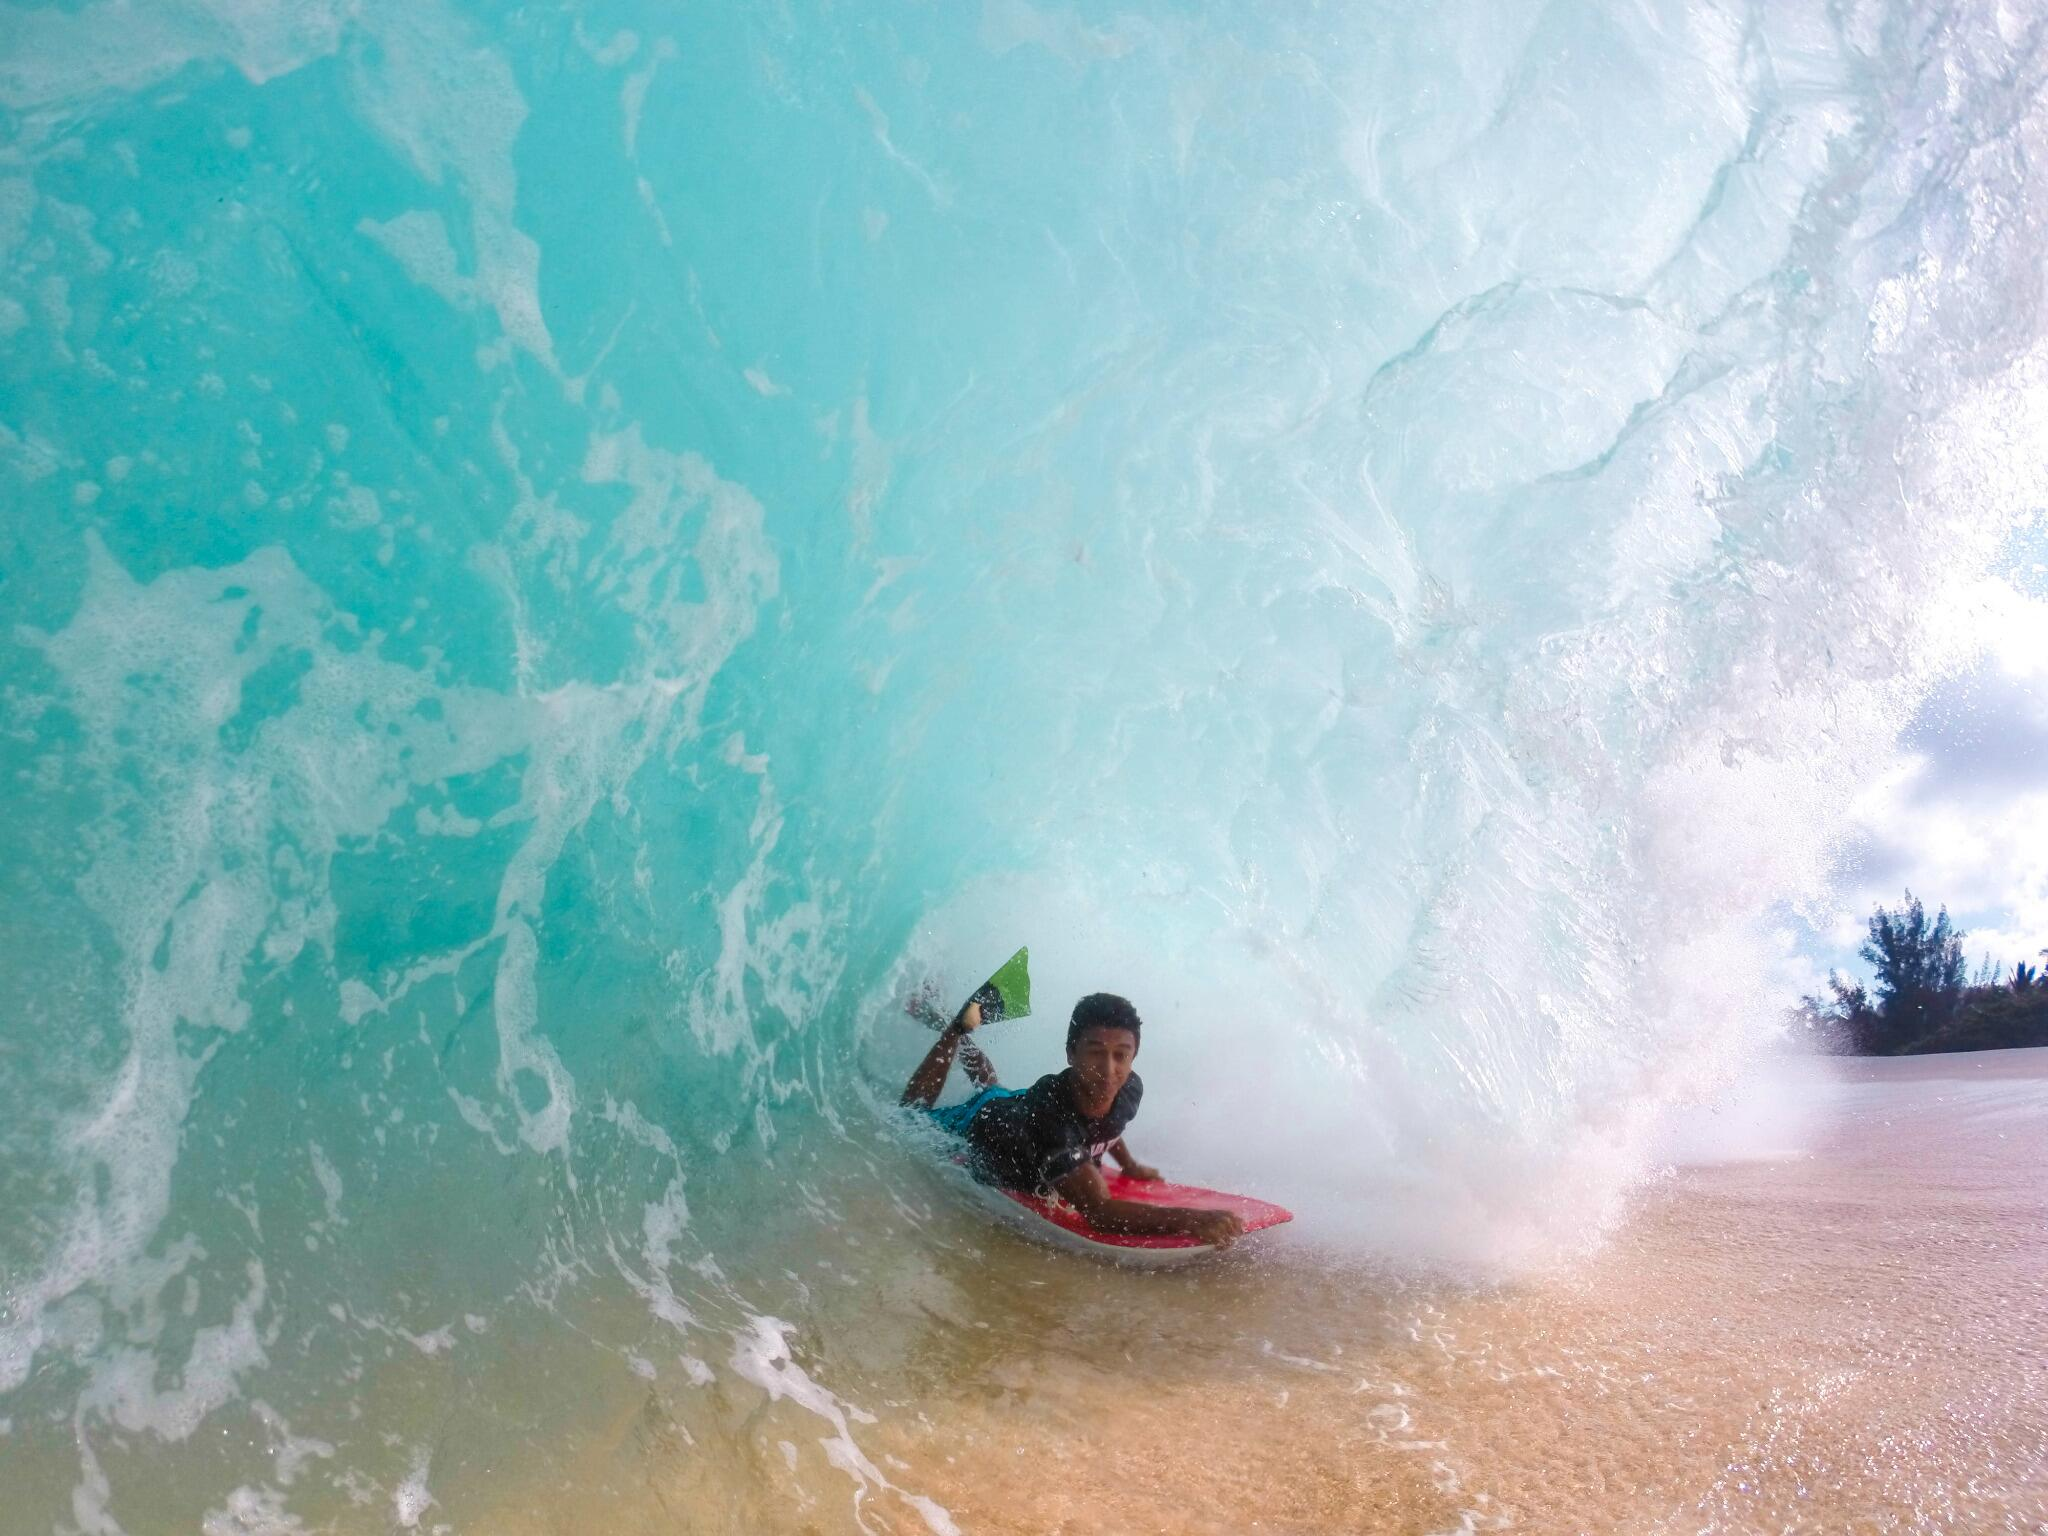 Photo of the Day! This one's gonna hurt. Photo of his friend Kainalu running out of water by @anthony_walsh_. #GoPro http://t.co/hBtfdSjvbU